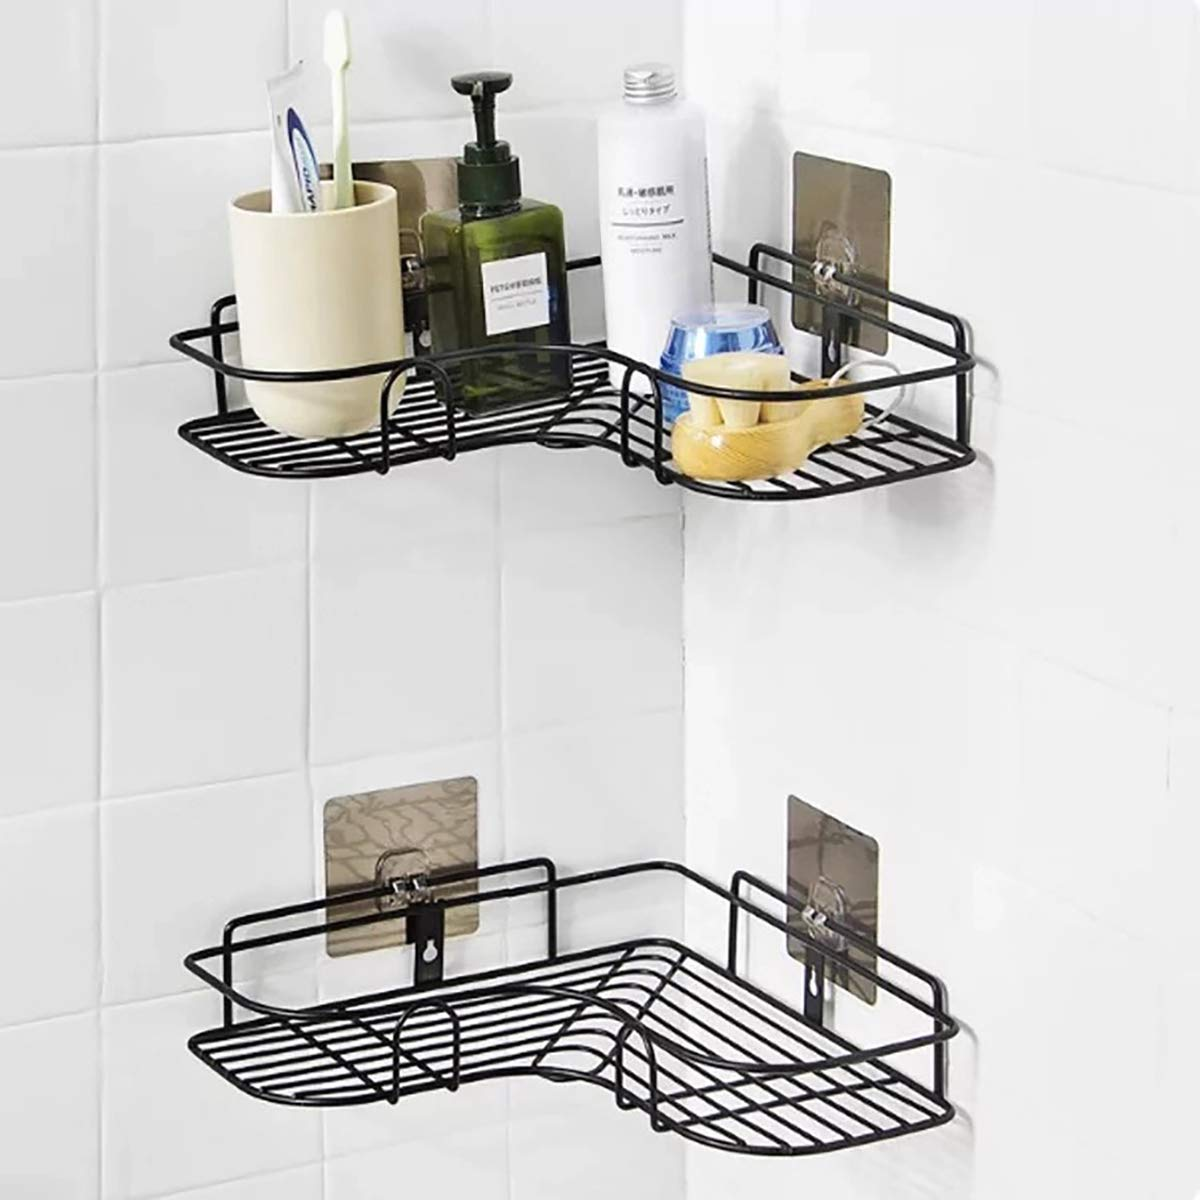 Diniva Multipurpose Kitchen Bathroom Corner Shelf Wall Mount Storage Rack  Bathroom Rack Soap Holder Storage Box Shower Rack Shelf, Bathroom Racks and  Shelves, Bathroom Stands and Racks (Black): Amazon.in: Home Improvement